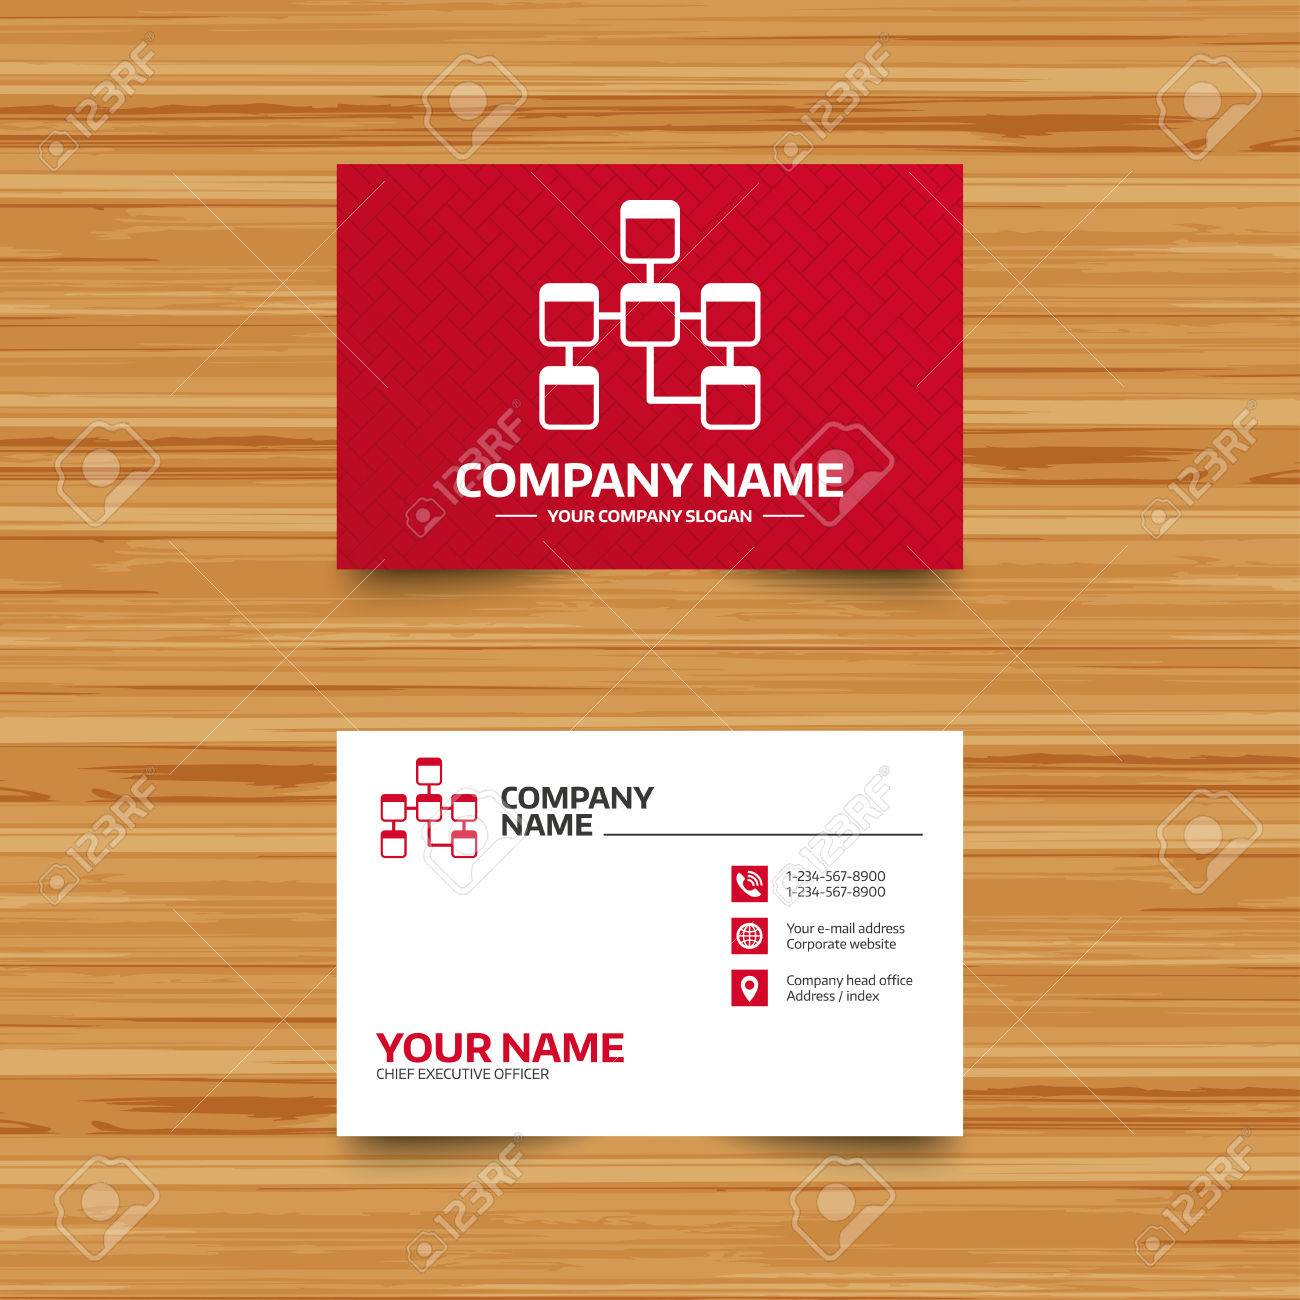 Business card template database sign icon relational database business card template database sign icon relational database schema symbol phone globe reheart